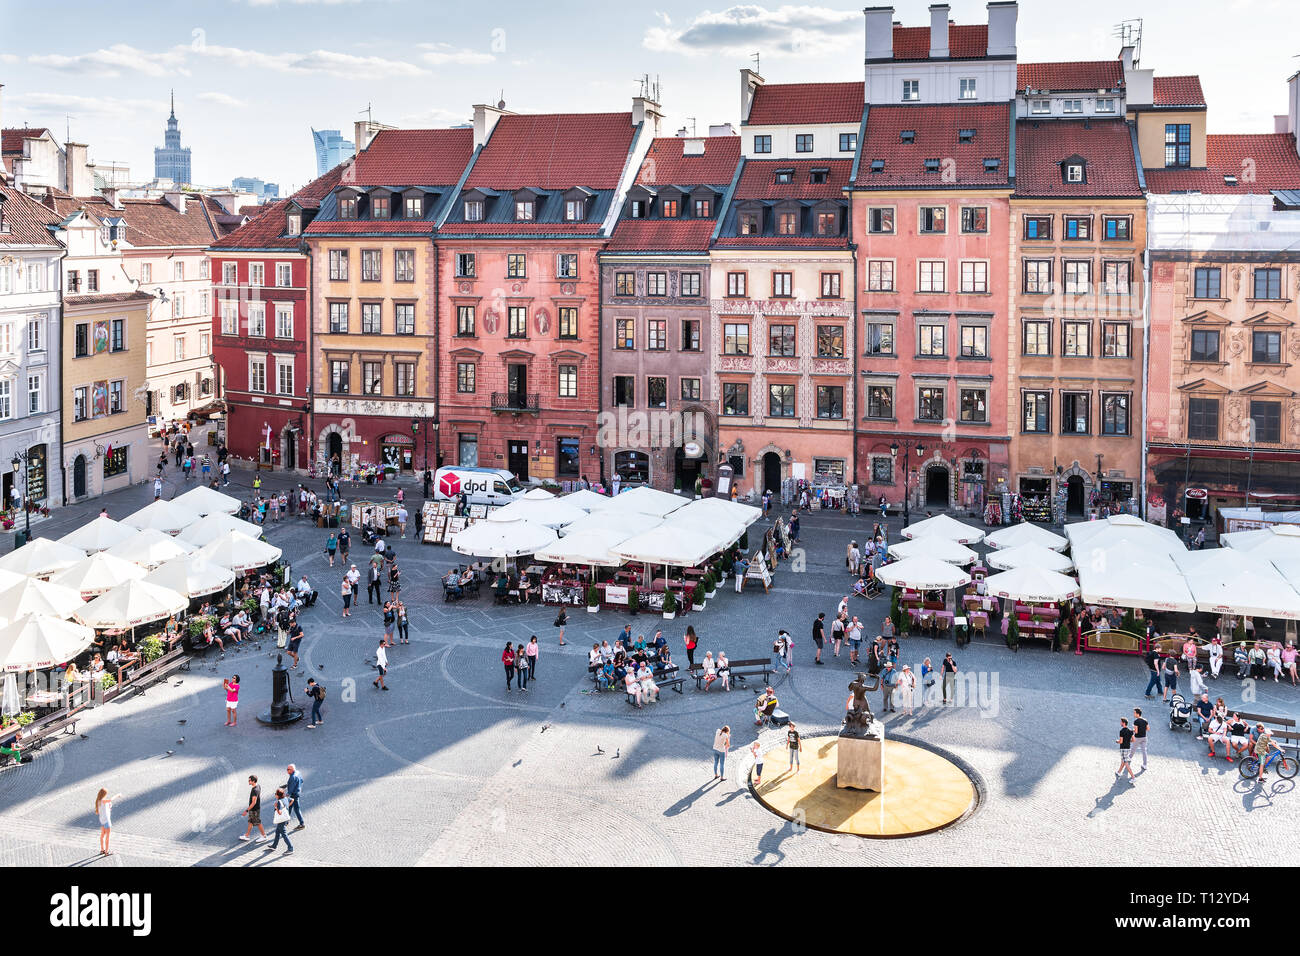 Warsaw, Poland - August 22, 2018: Cityscape with high angle view of architecture rooftop buildings and sky in old town market square in evening with m Stock Photo